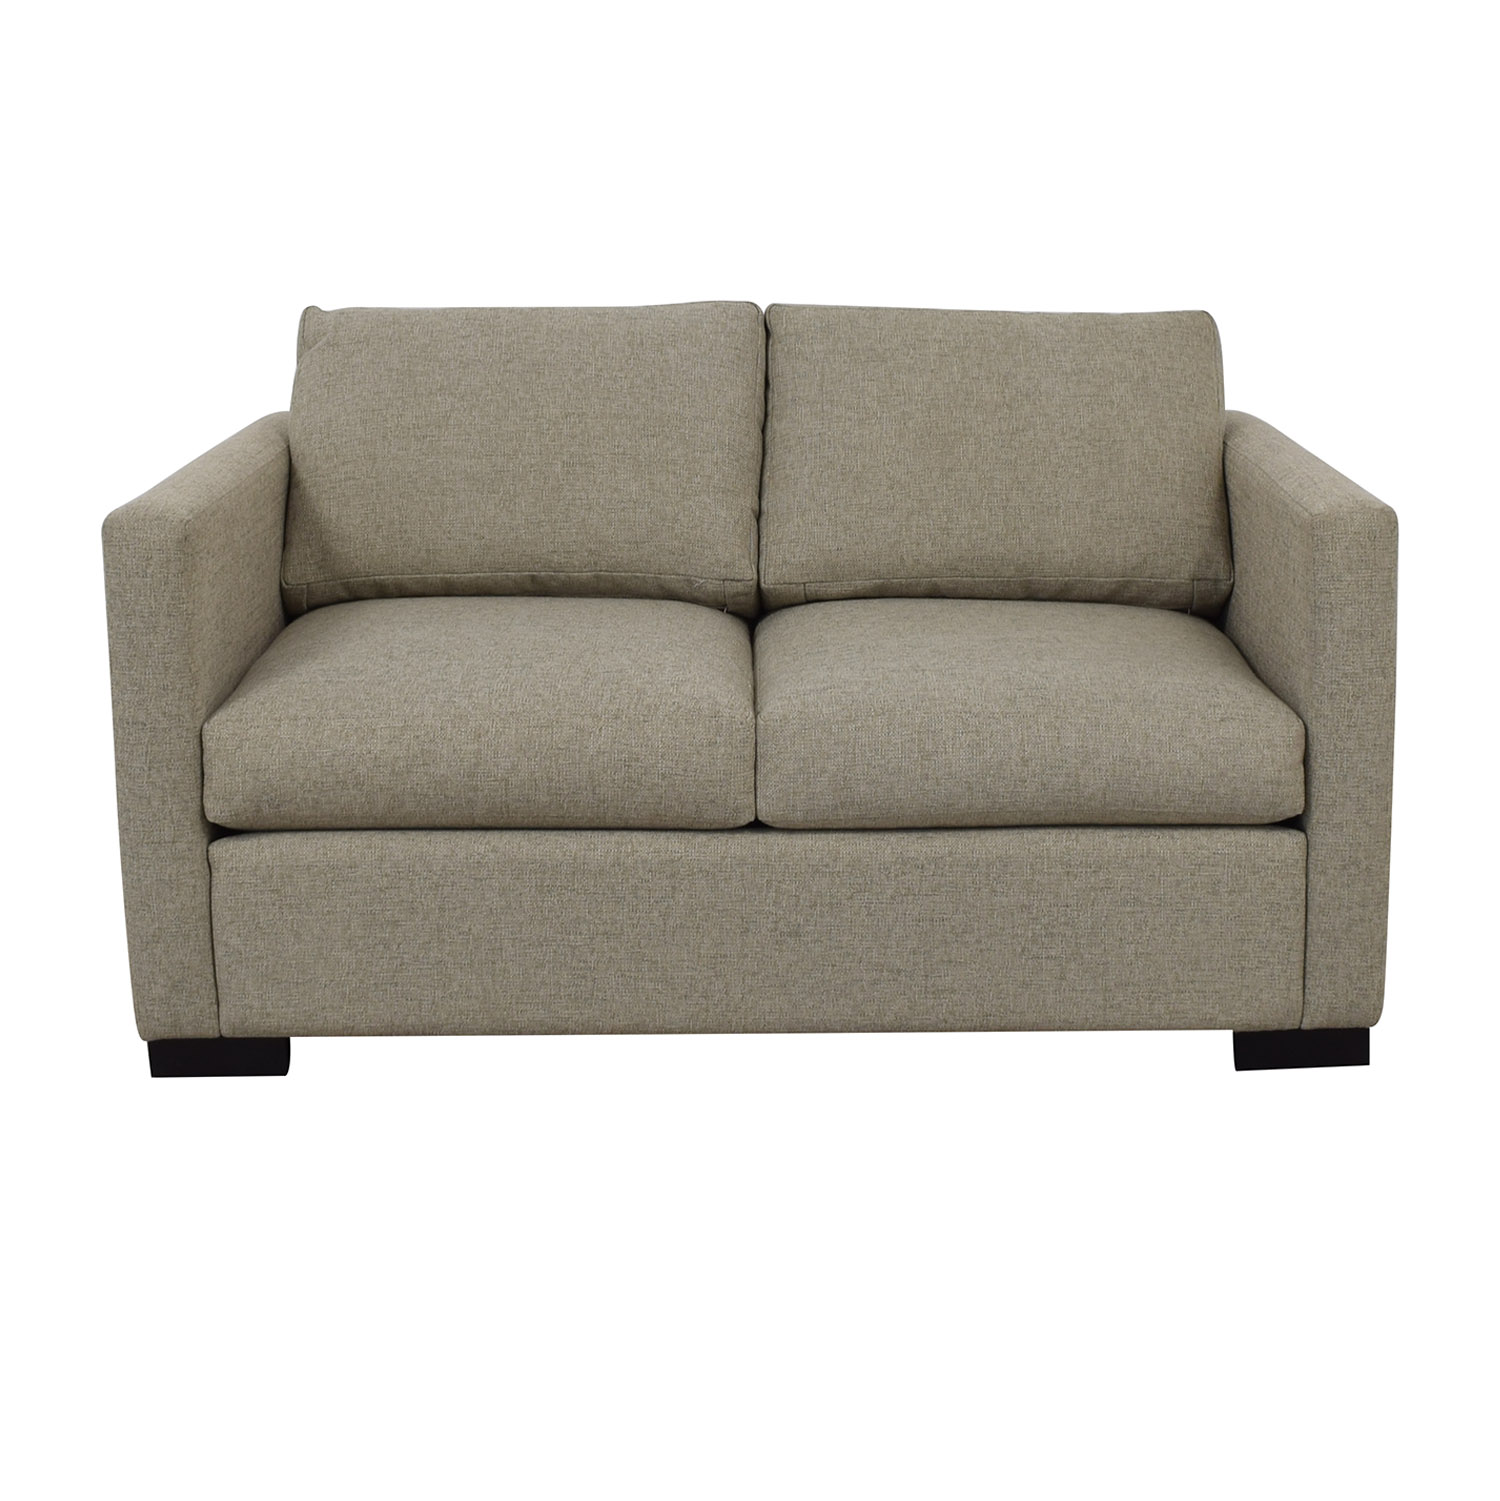 Beige Linen Upholstery Two-Cushion Loveseat for sale